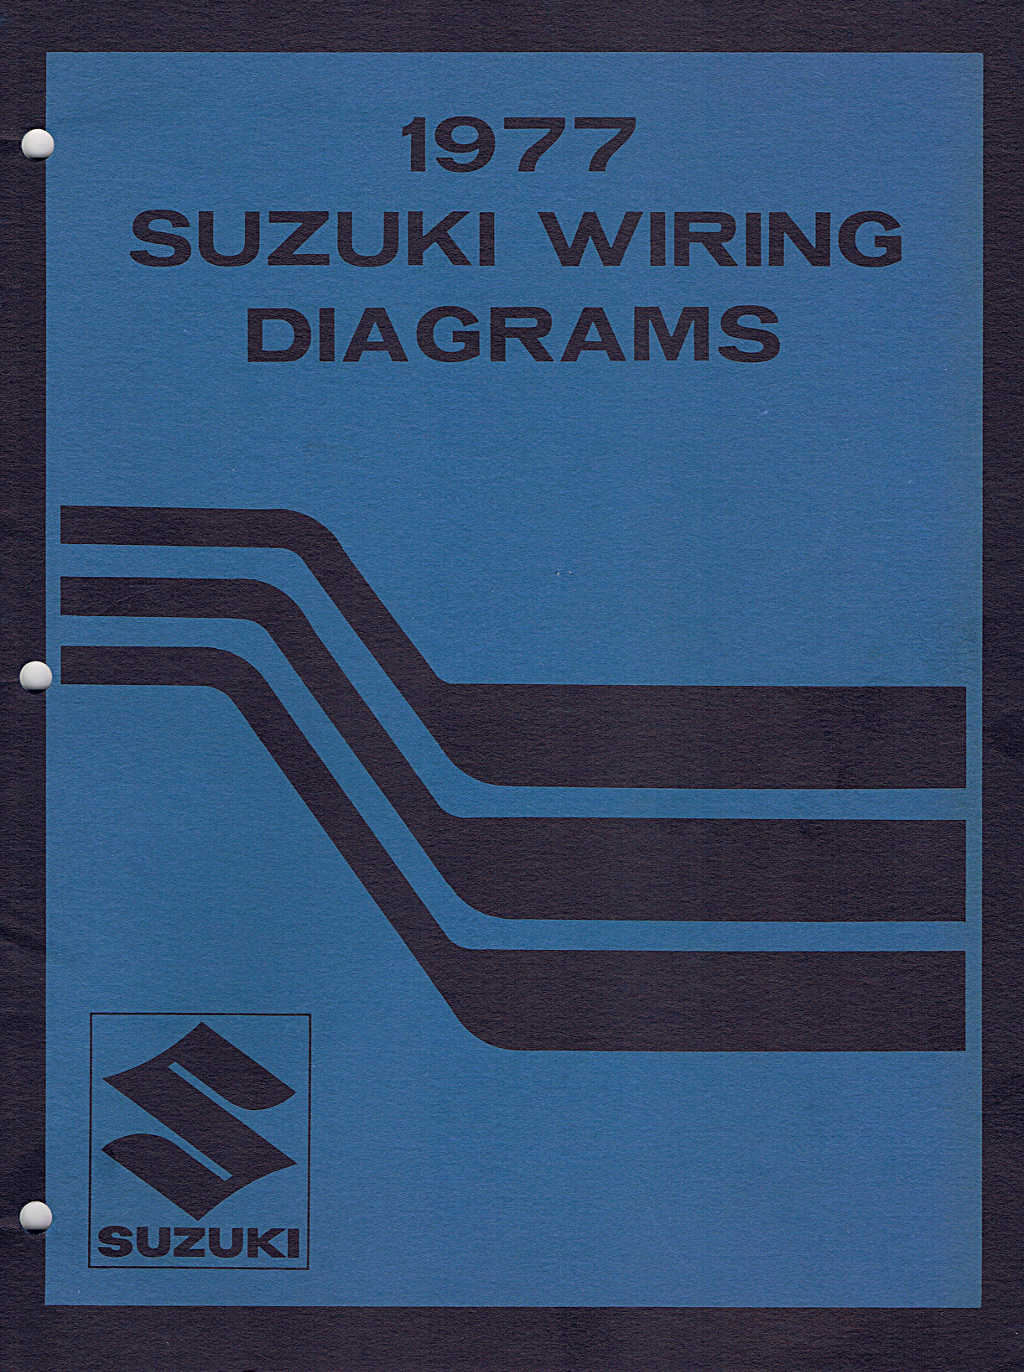 Suzuki Electrical Diagrams Carry Engine Diagram Trusted Schematics Wiring This Is A Selection Of That I Have Gathered Together In One Location Just For Ease Reference Dont Sell Them Nor Do Supply